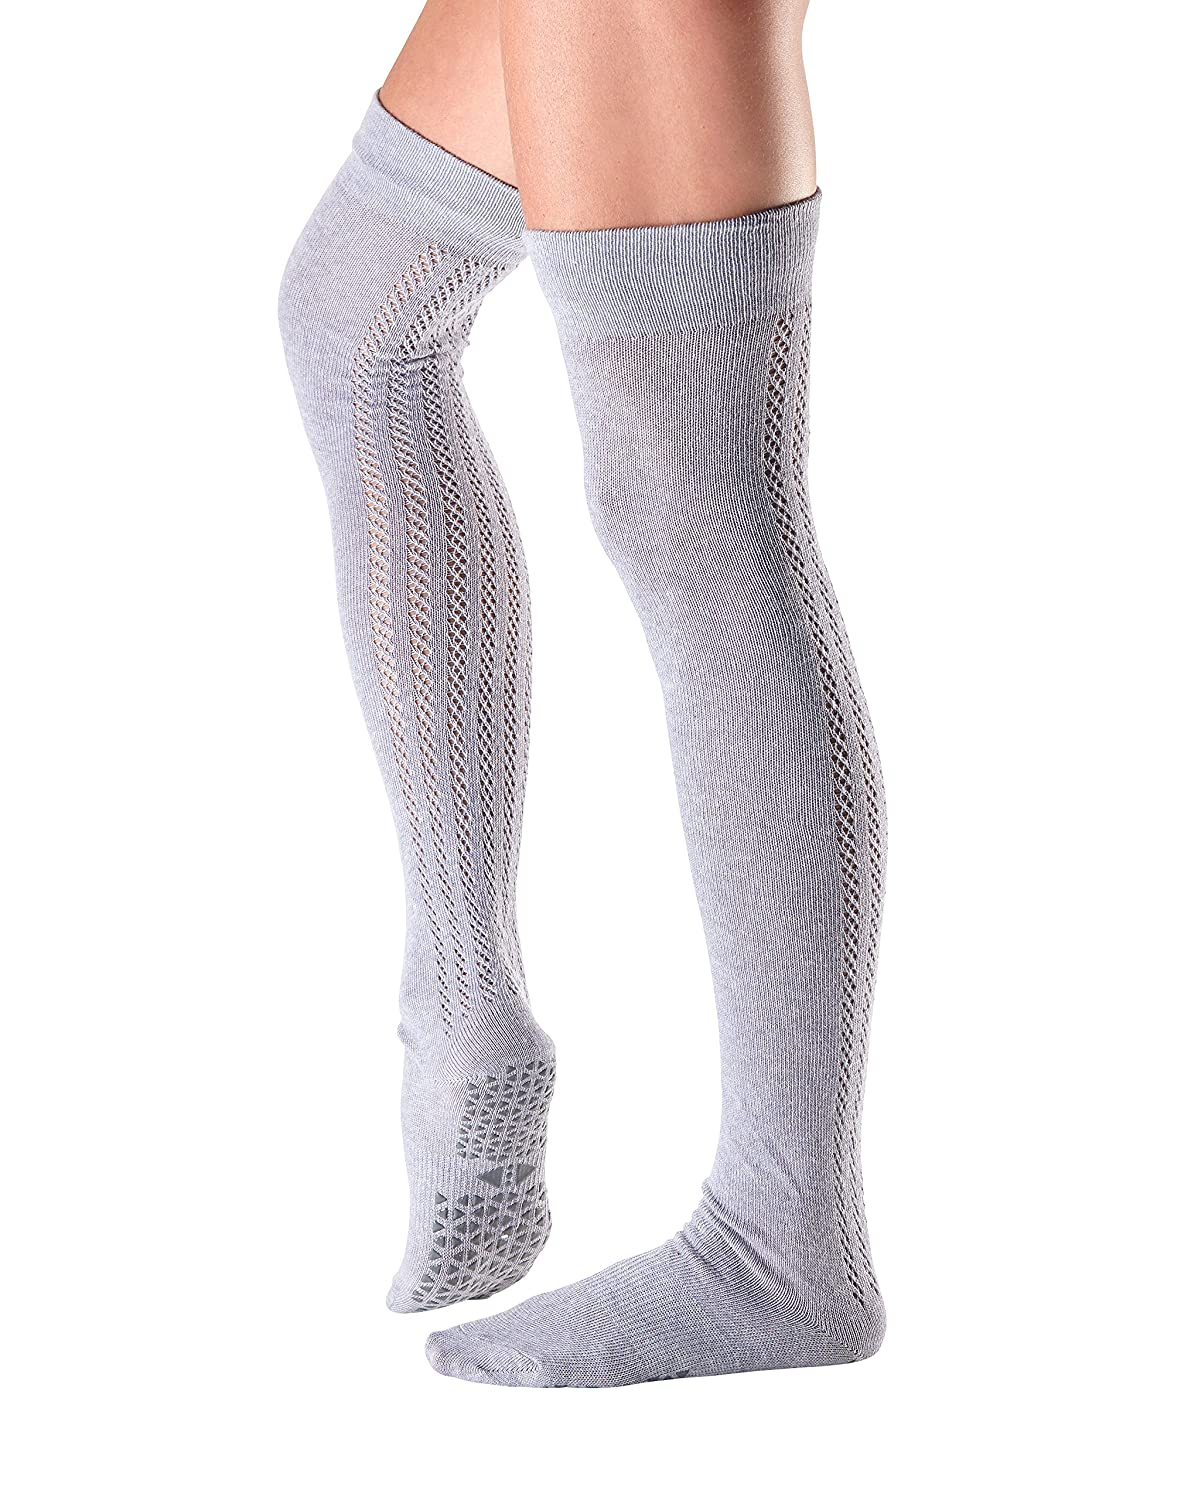 Tavi Noir Grip Kris Over the Knee High Grip Socks for Barre, Pilates, and Yoga, Ebony, Medium